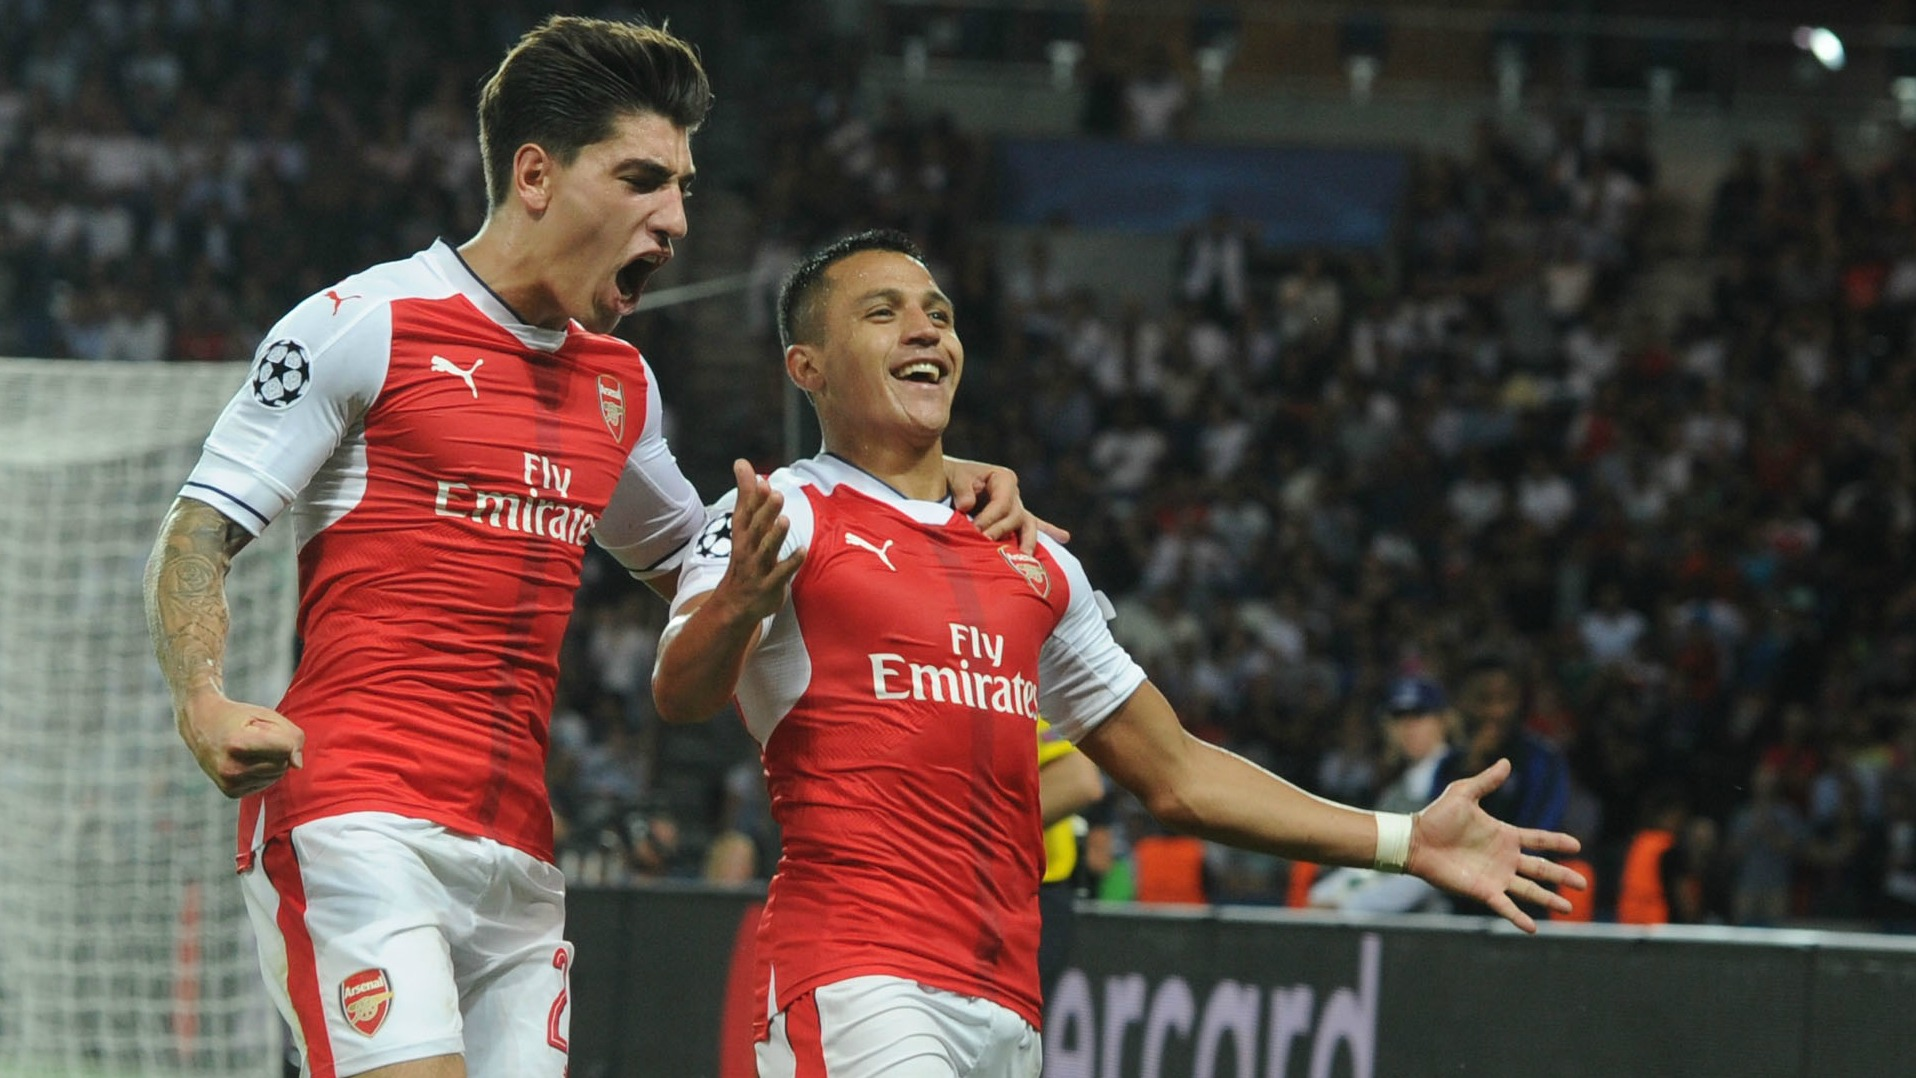 Arsenal should be happy with their point, but really concerned with their play